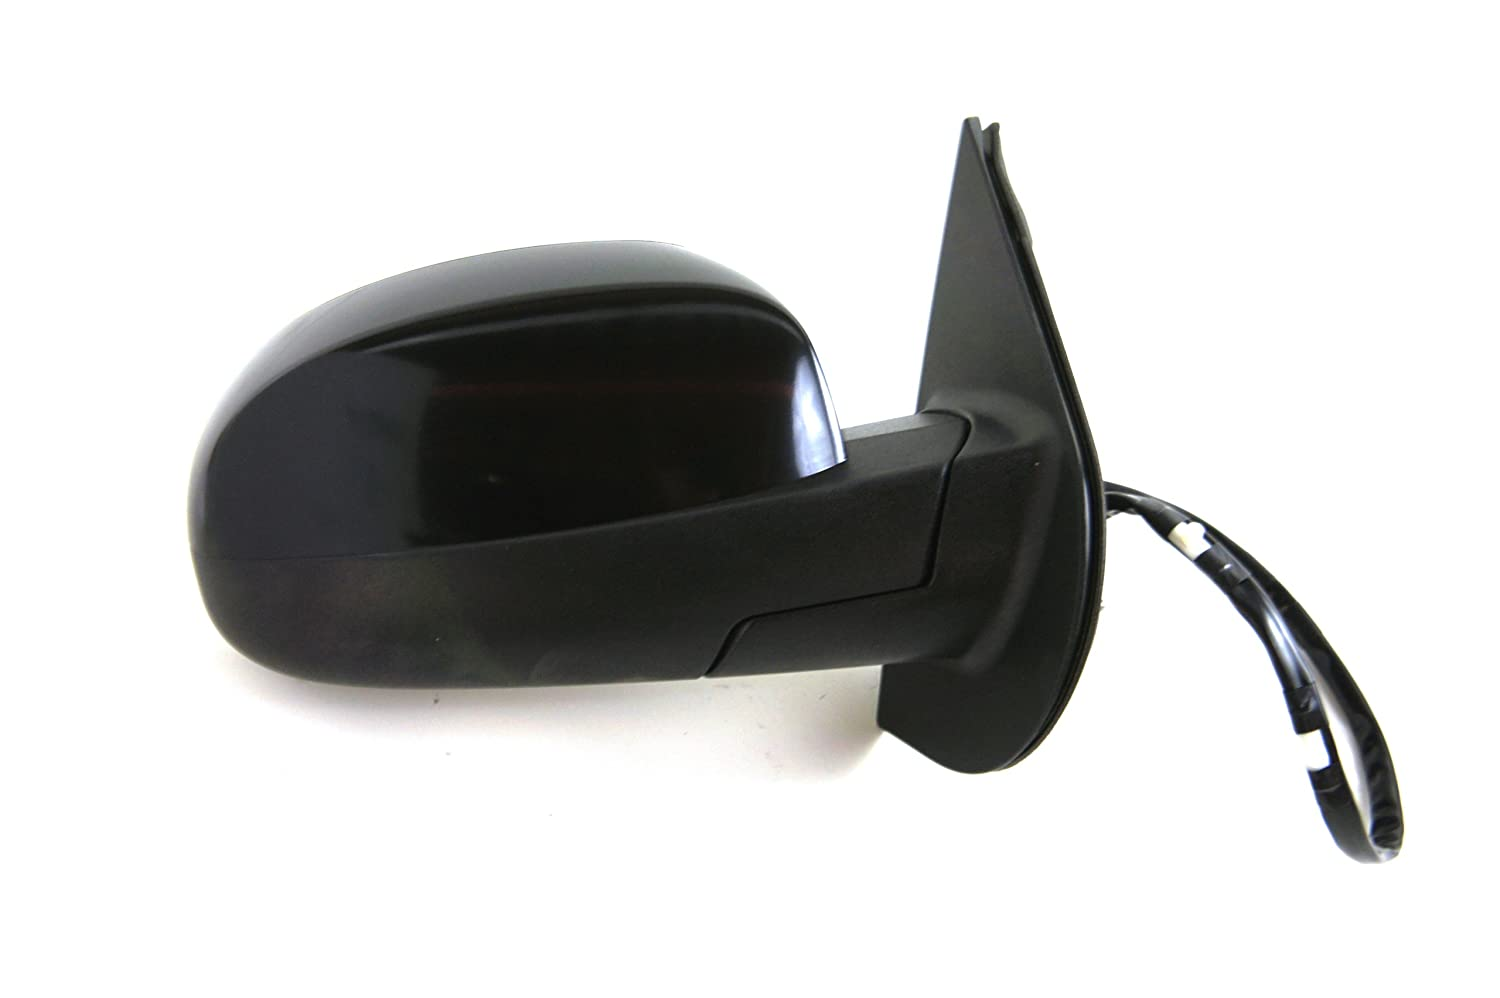 Genuine Gm Parts 25779849 Passenger Side Mirror Outside 2002 Silverado Wiring Diagram Heated Mirrors Rear View Automotive